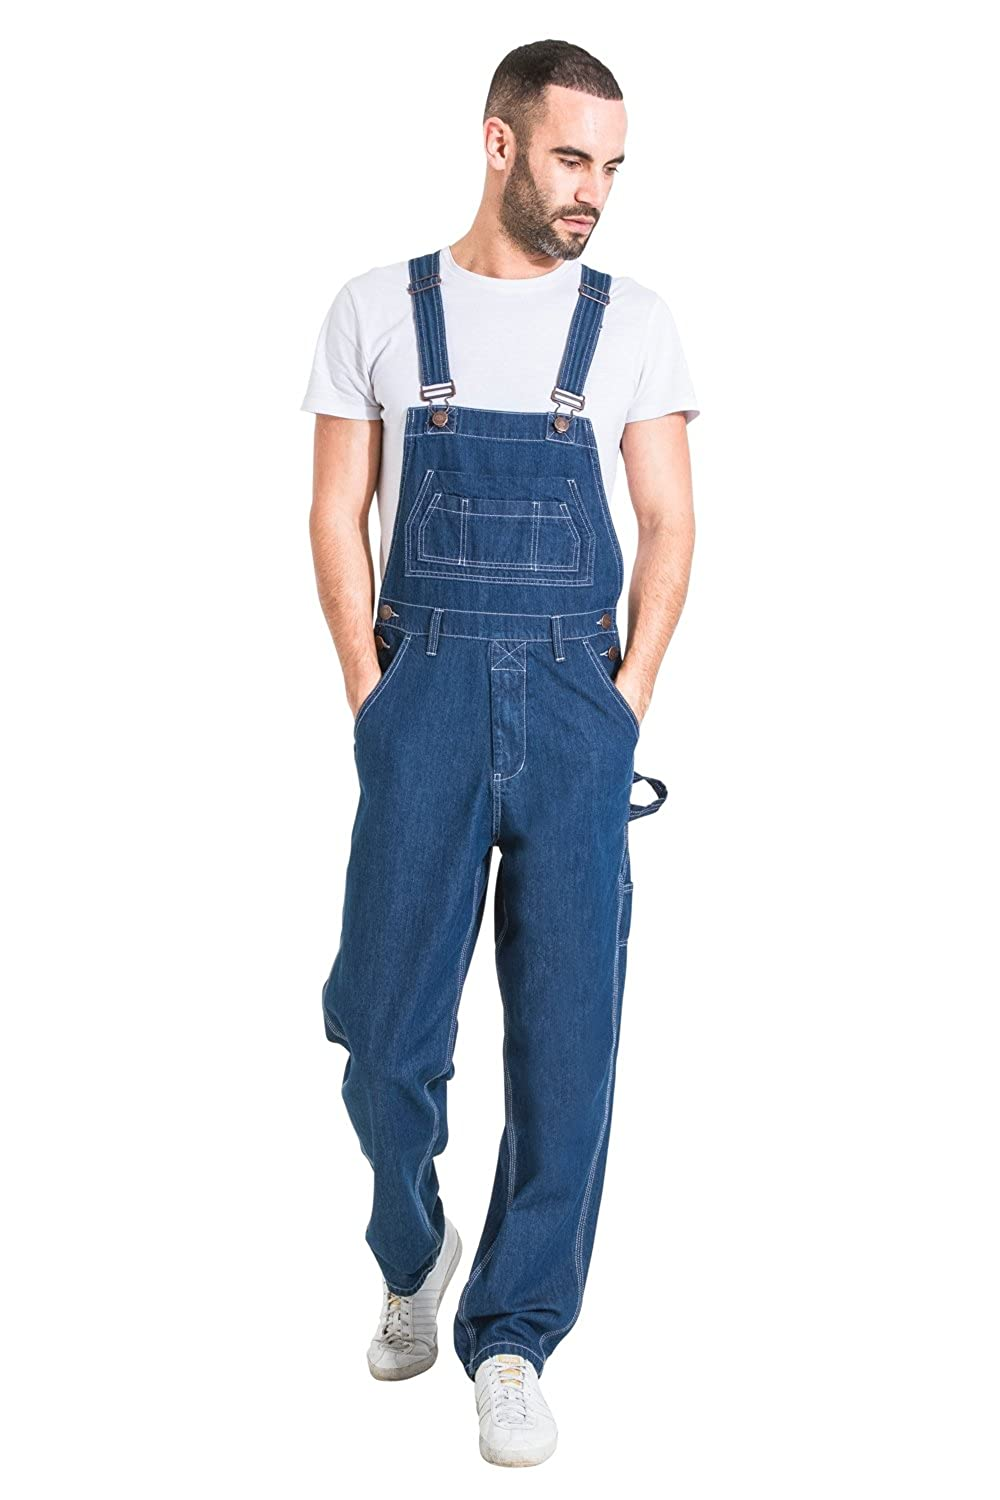 c98f3d348285 Uskees Mens Relaxed Fit Denim Dungarees - Stonewash Value Overalls  Dungarees MENSVALUESW  Amazon.co.uk  Clothing